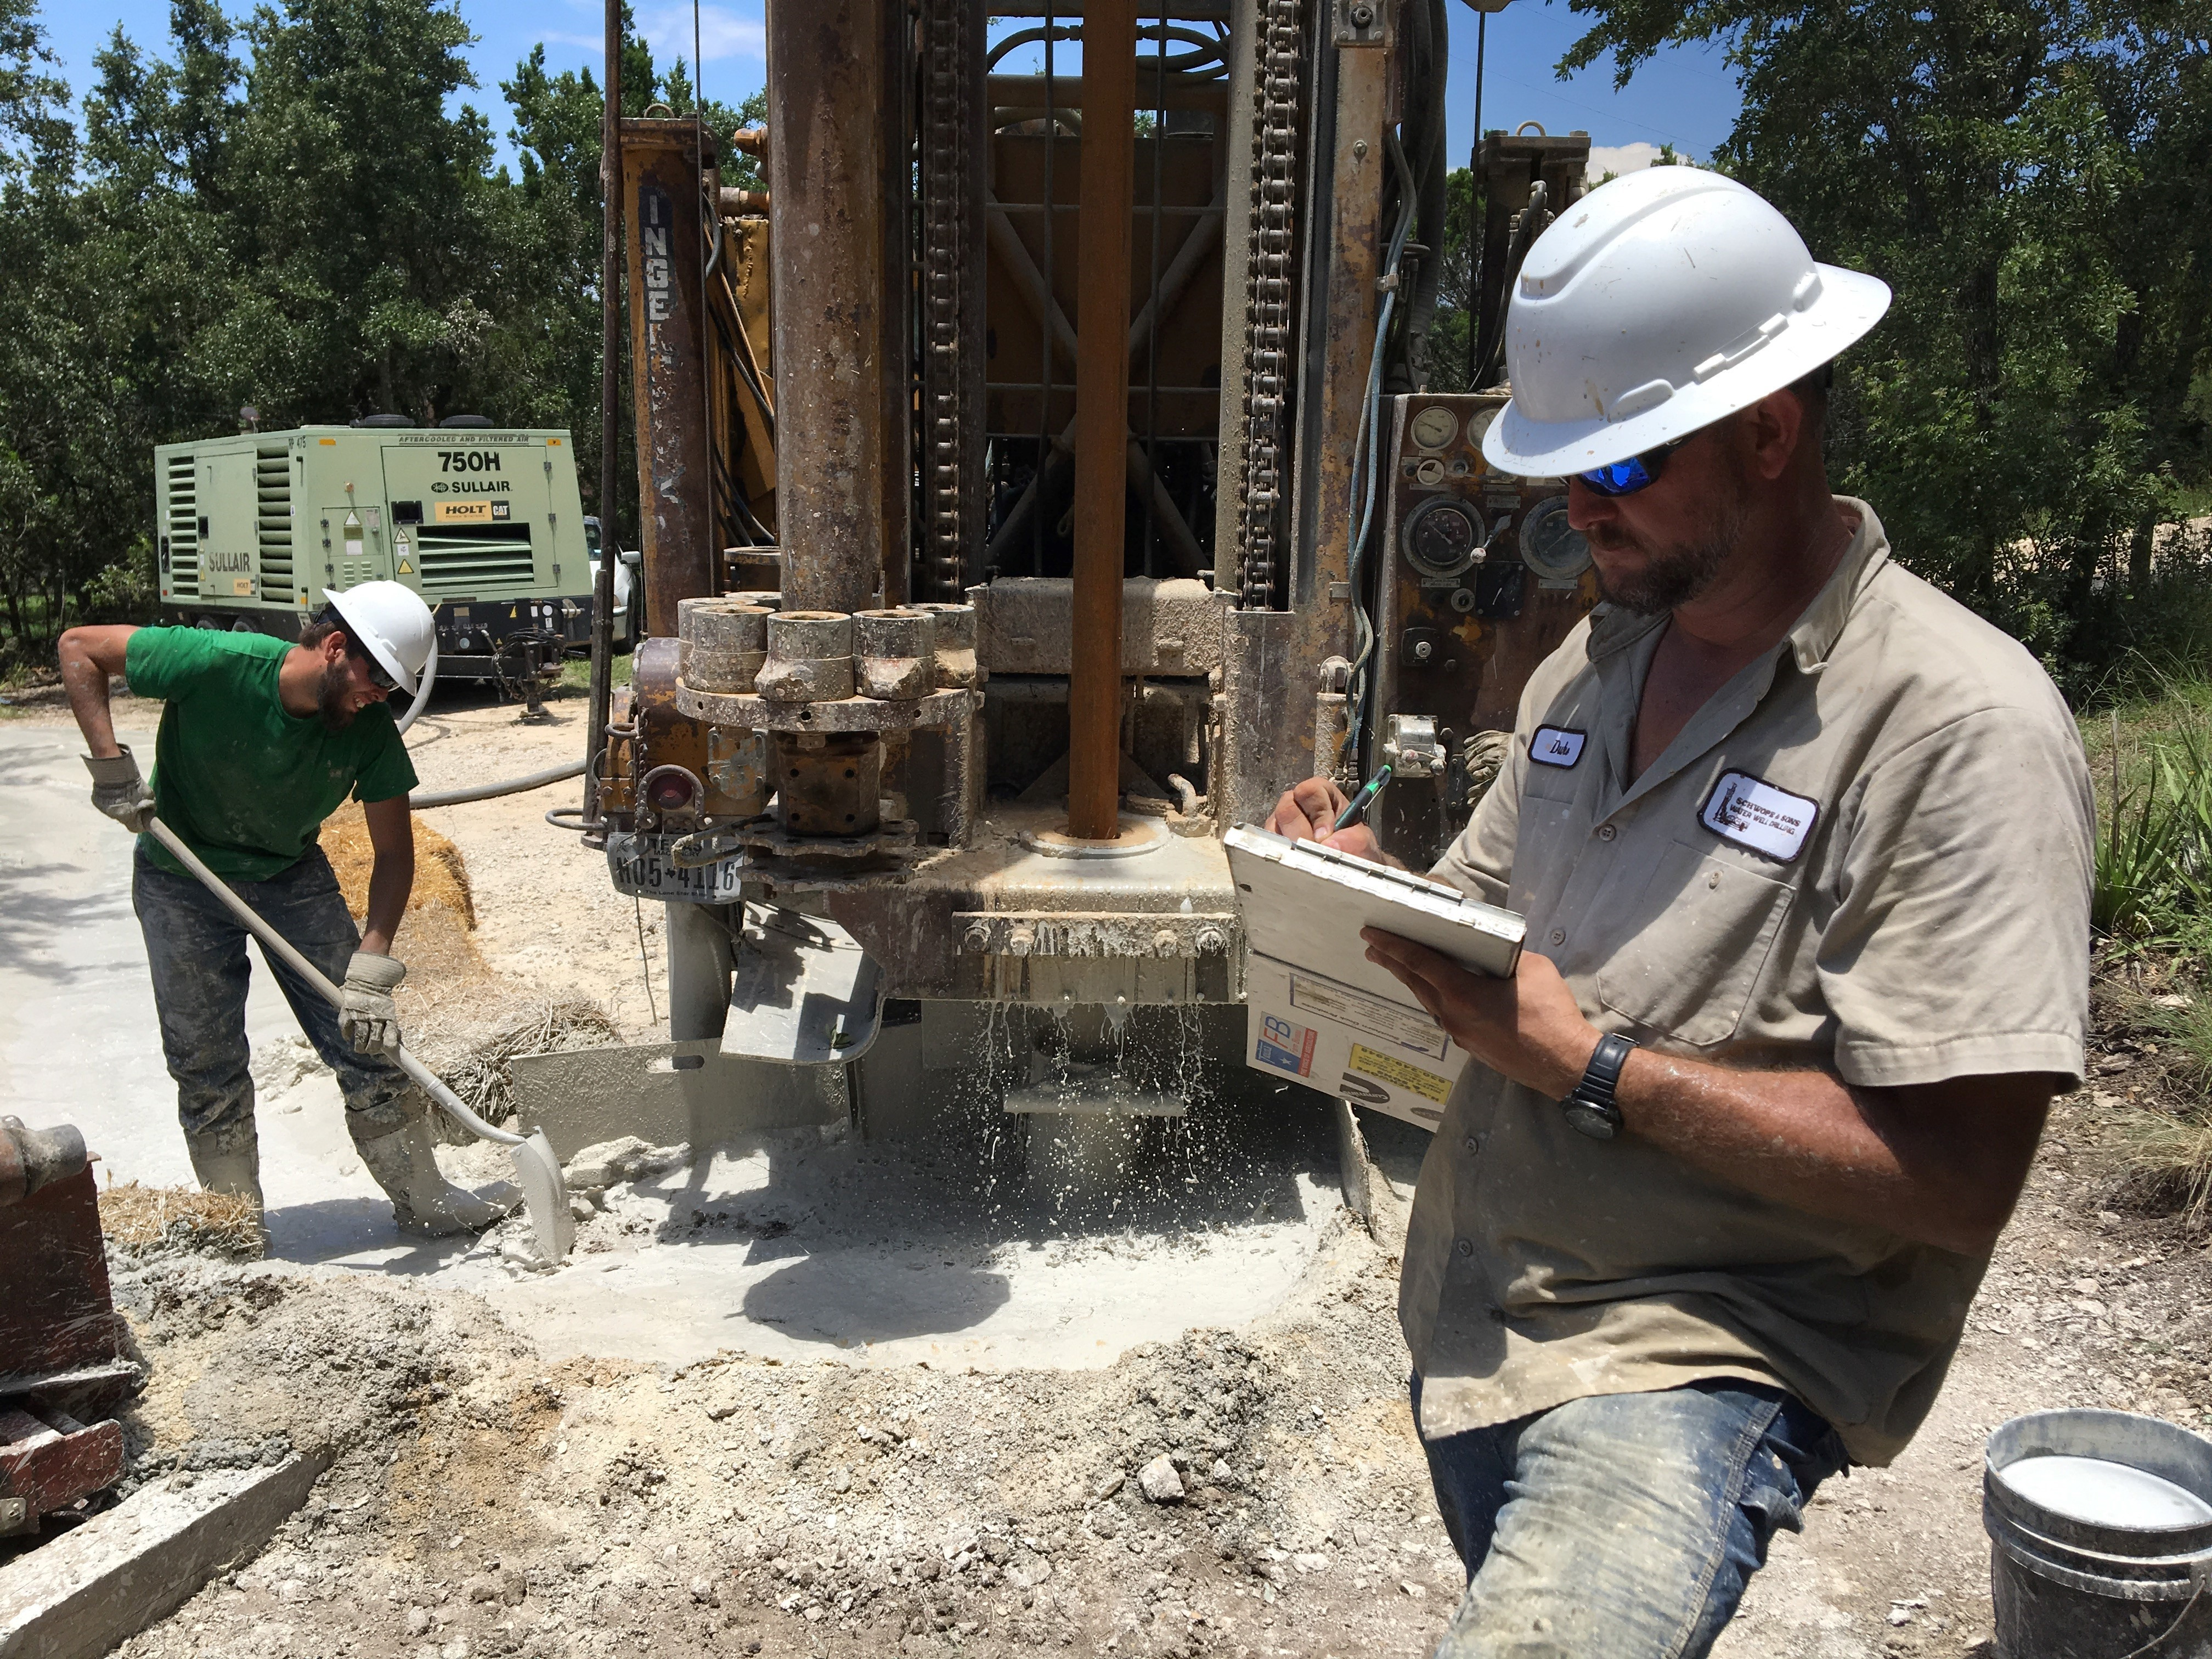 Xylem Watermark teams with Water Well Trust to install new water well for Texas family - 1.jpeg